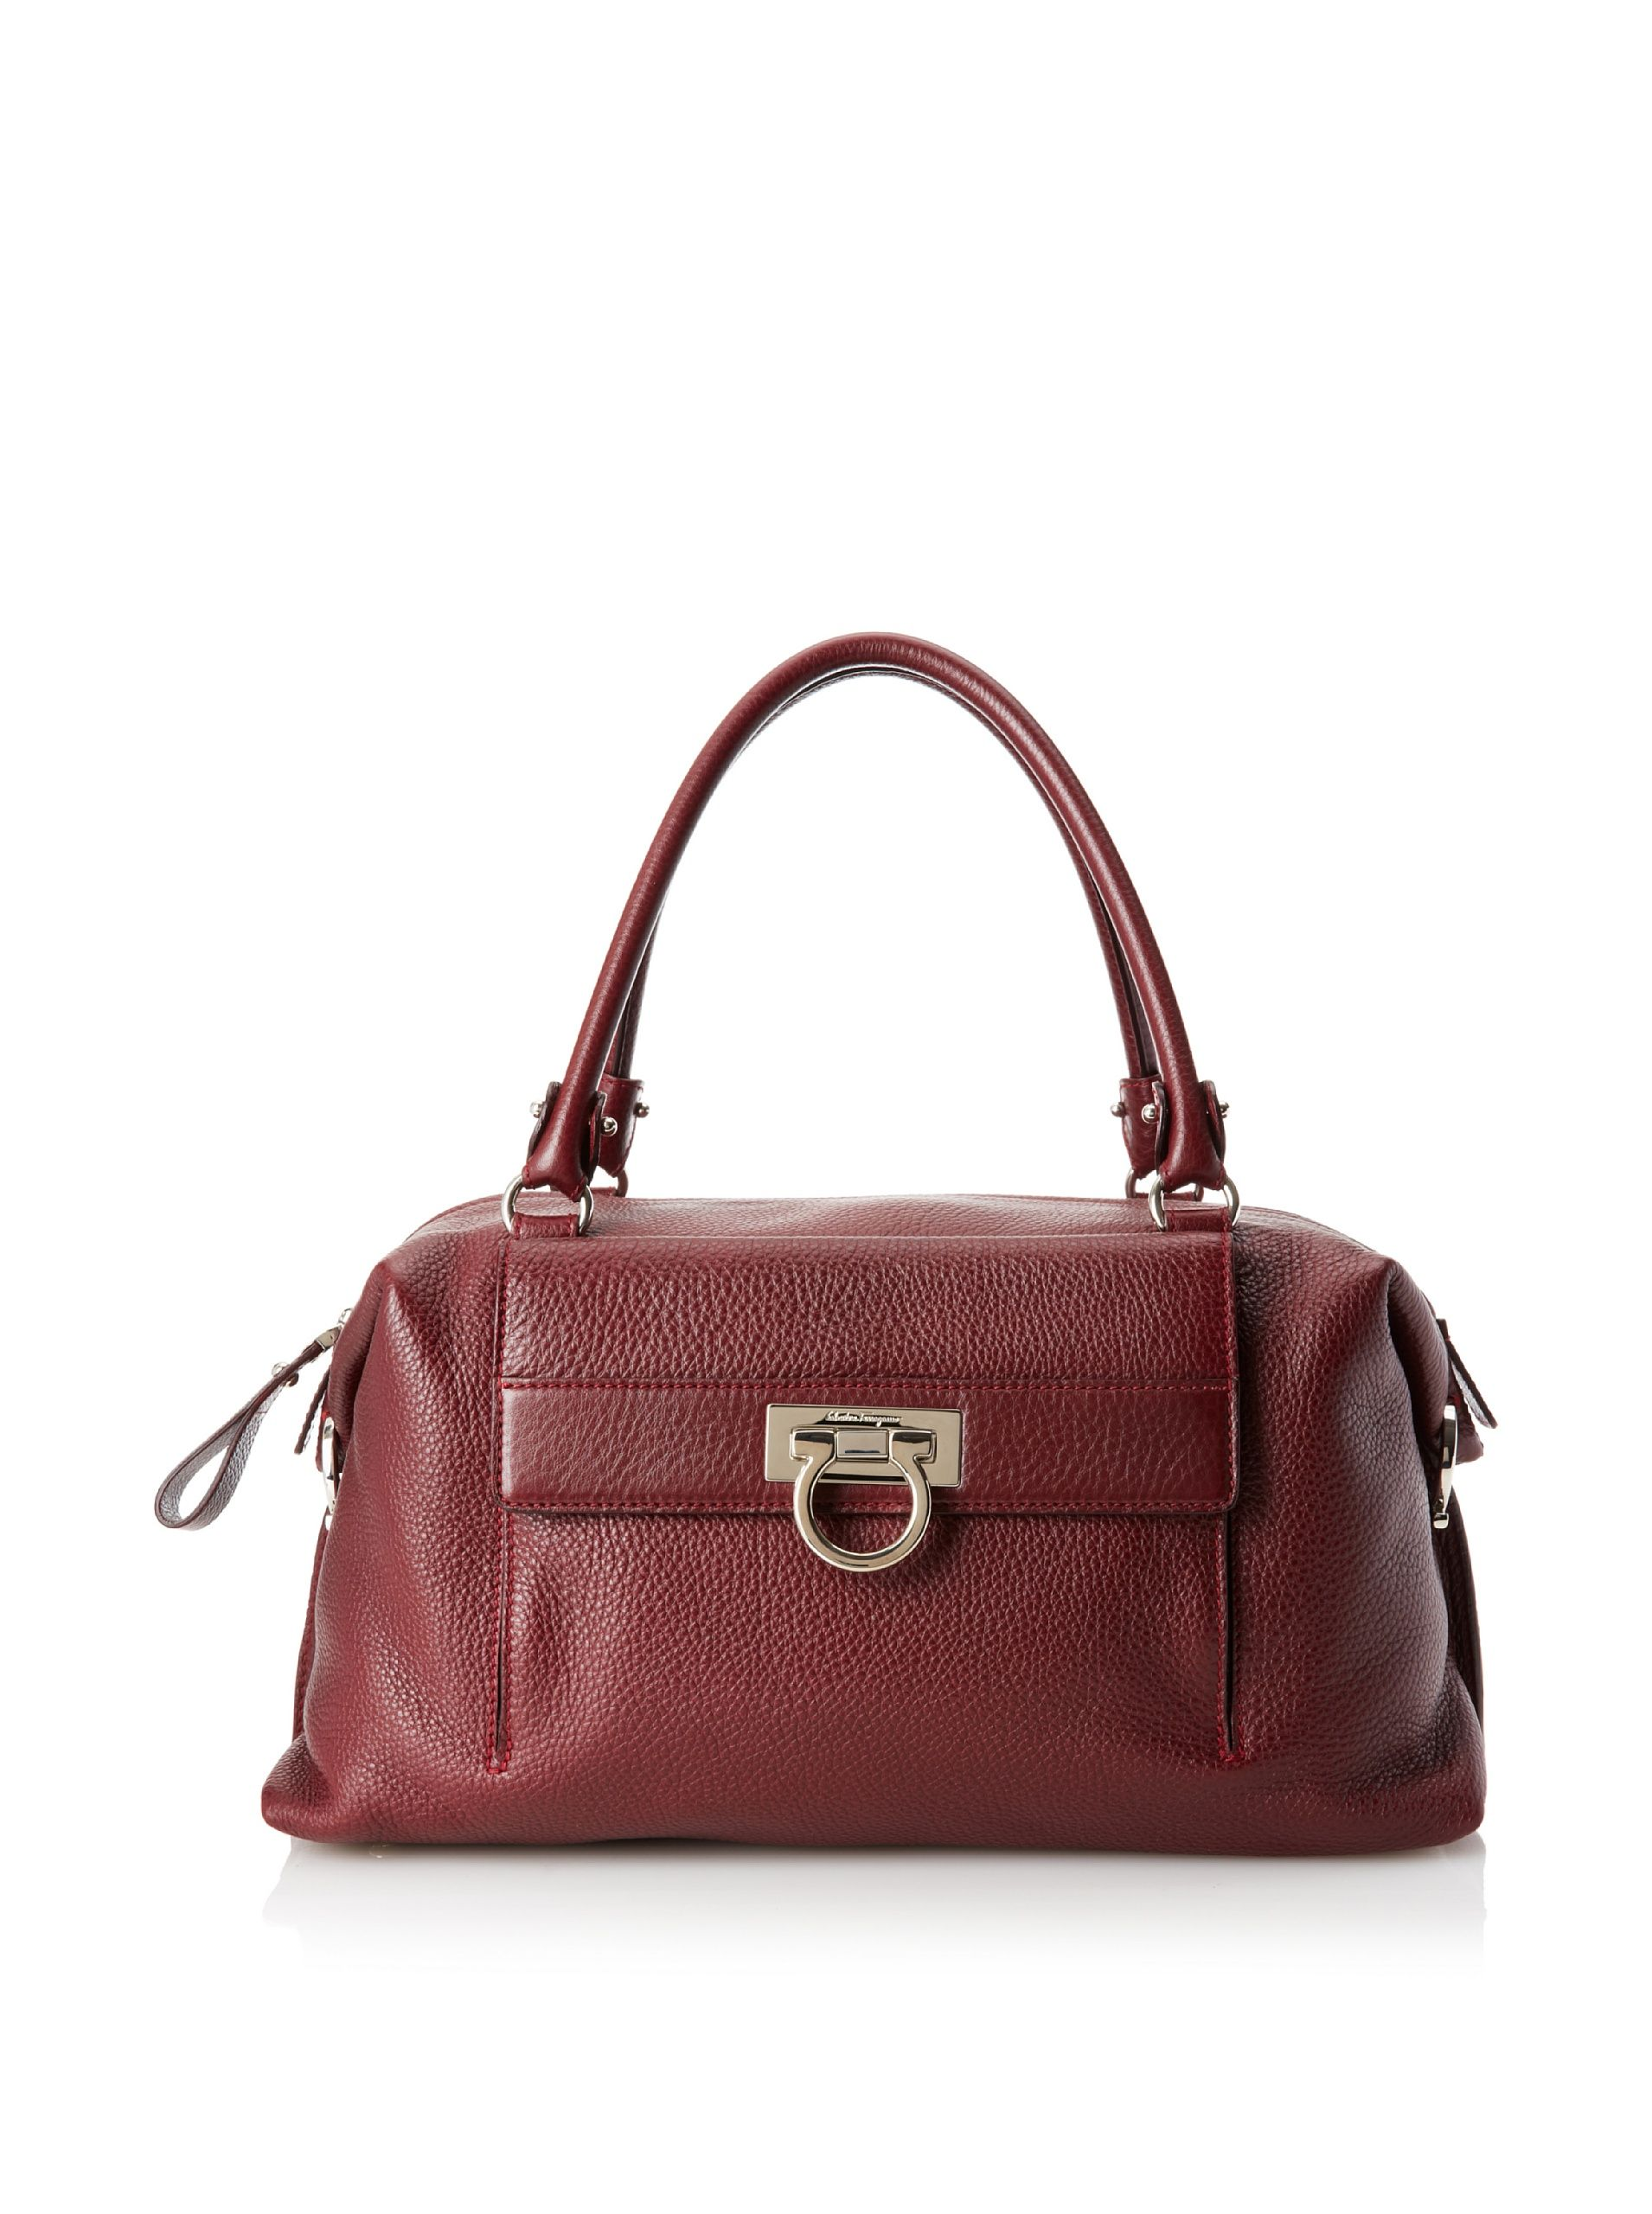 Salvatore Ferragamo Women S Noah Handbag Bordeaux Luxe Pebbled Leather Satchel With Polished Silver Tone Hardware Back Zip And Front Flap Pockets